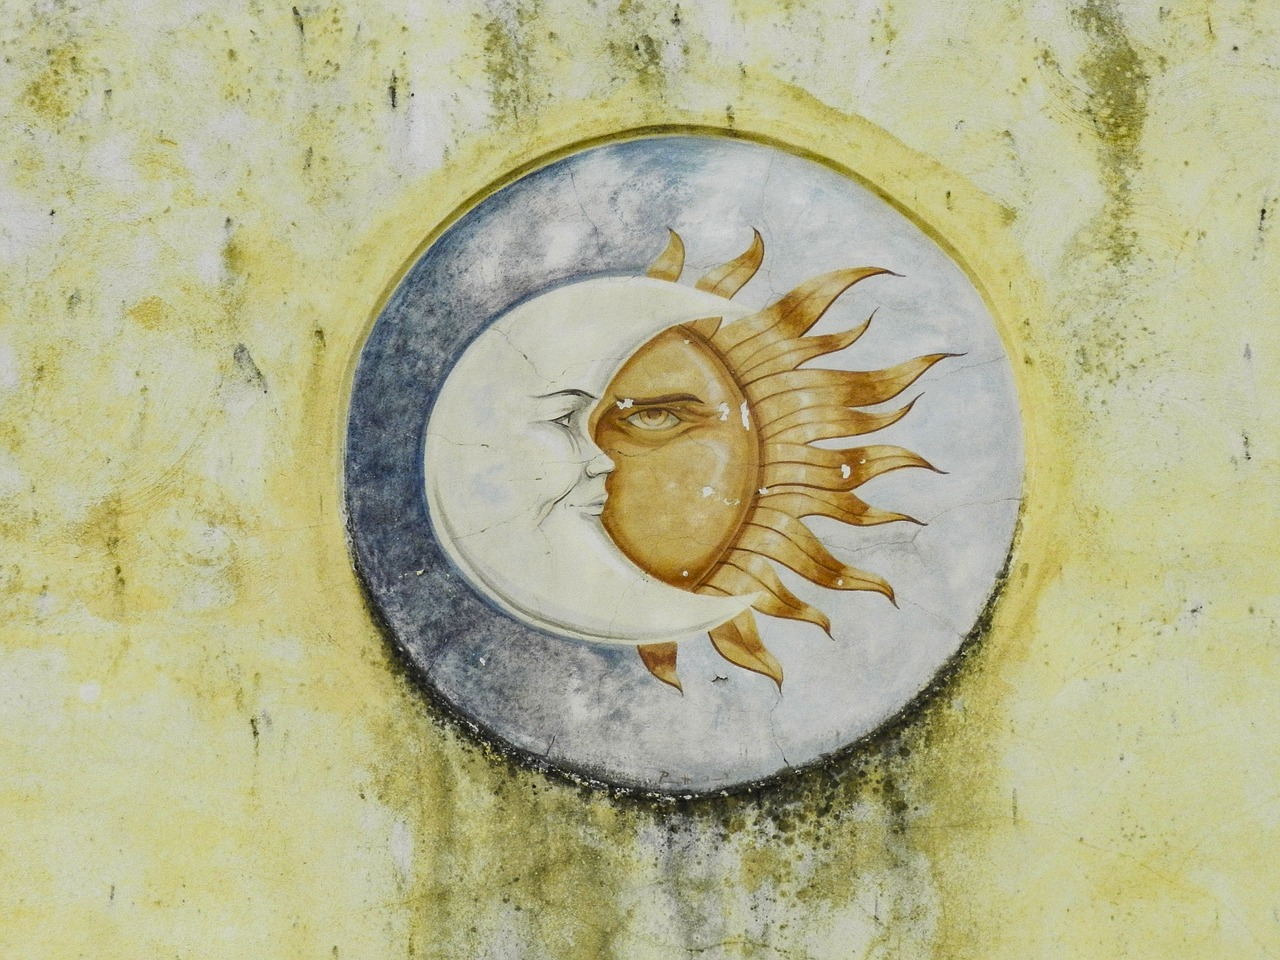 Sun And Moon Conjunction In 7th House: Impact On Love, Career And More